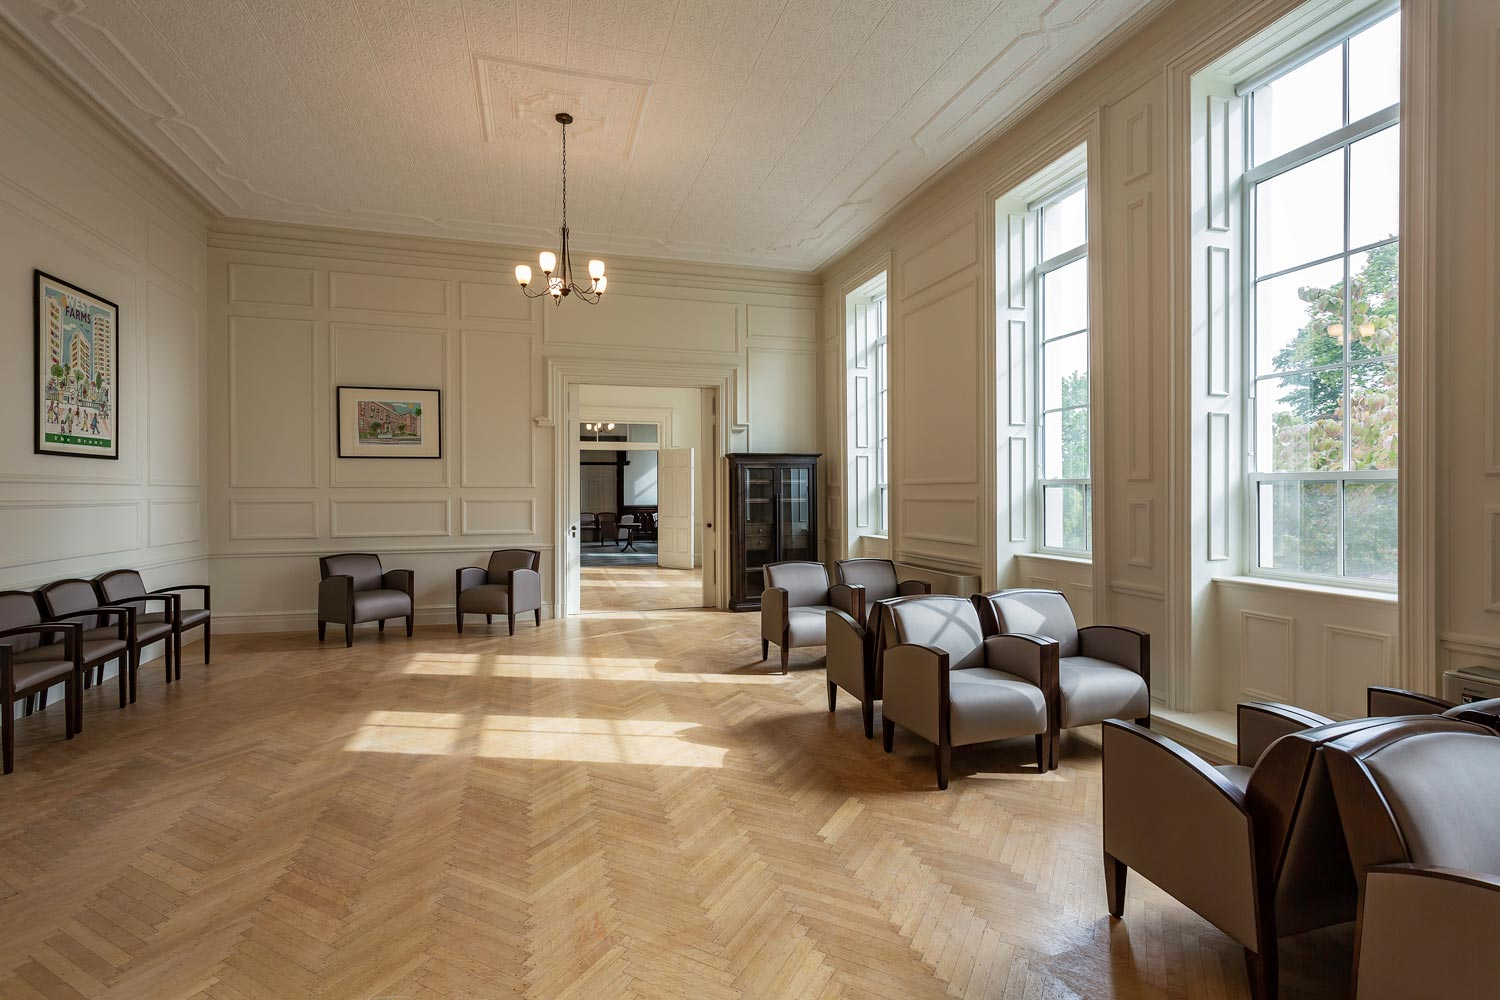 The old world charm of the converted convent at Serviam Height Senior Apartments